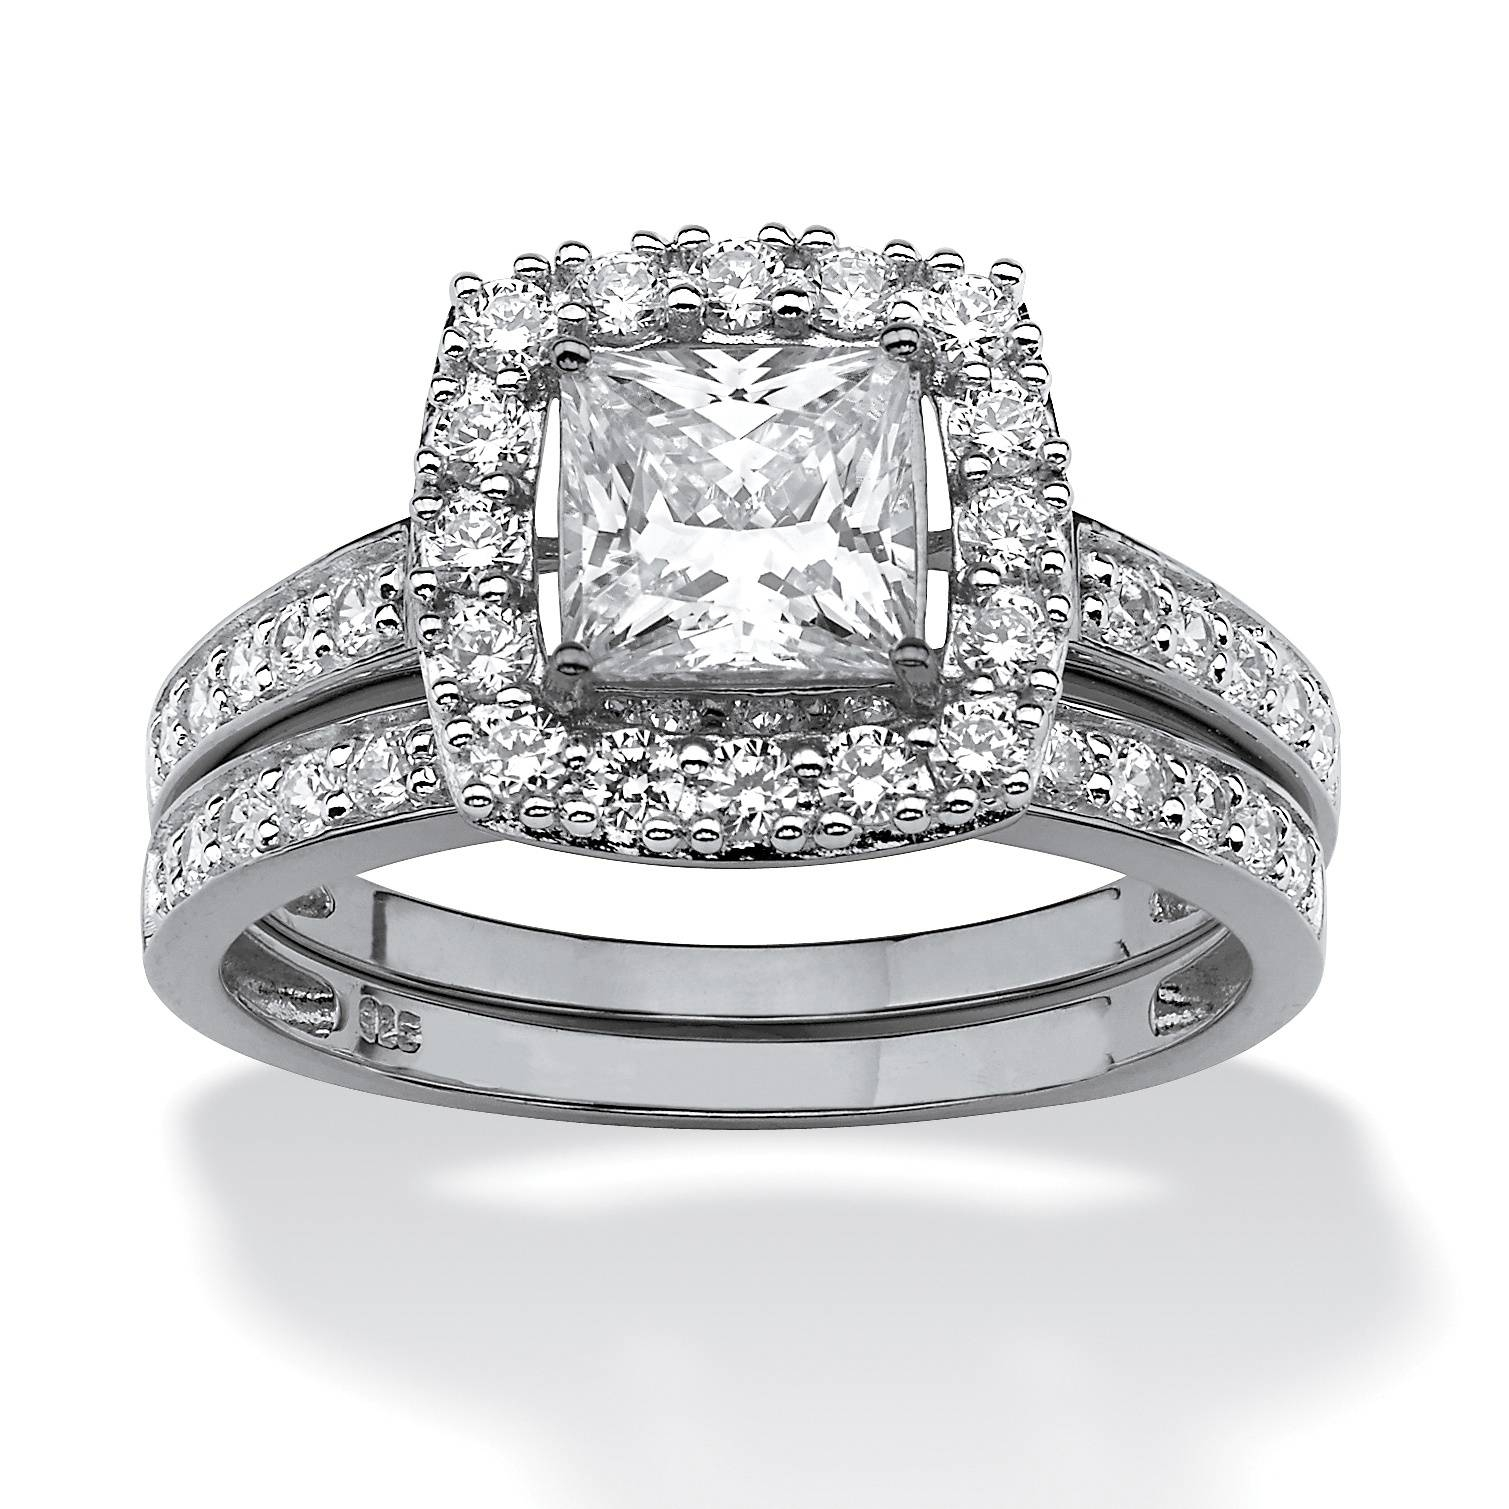 Miabella 5 3/5 Carat T.g.w (View 9 of 15)